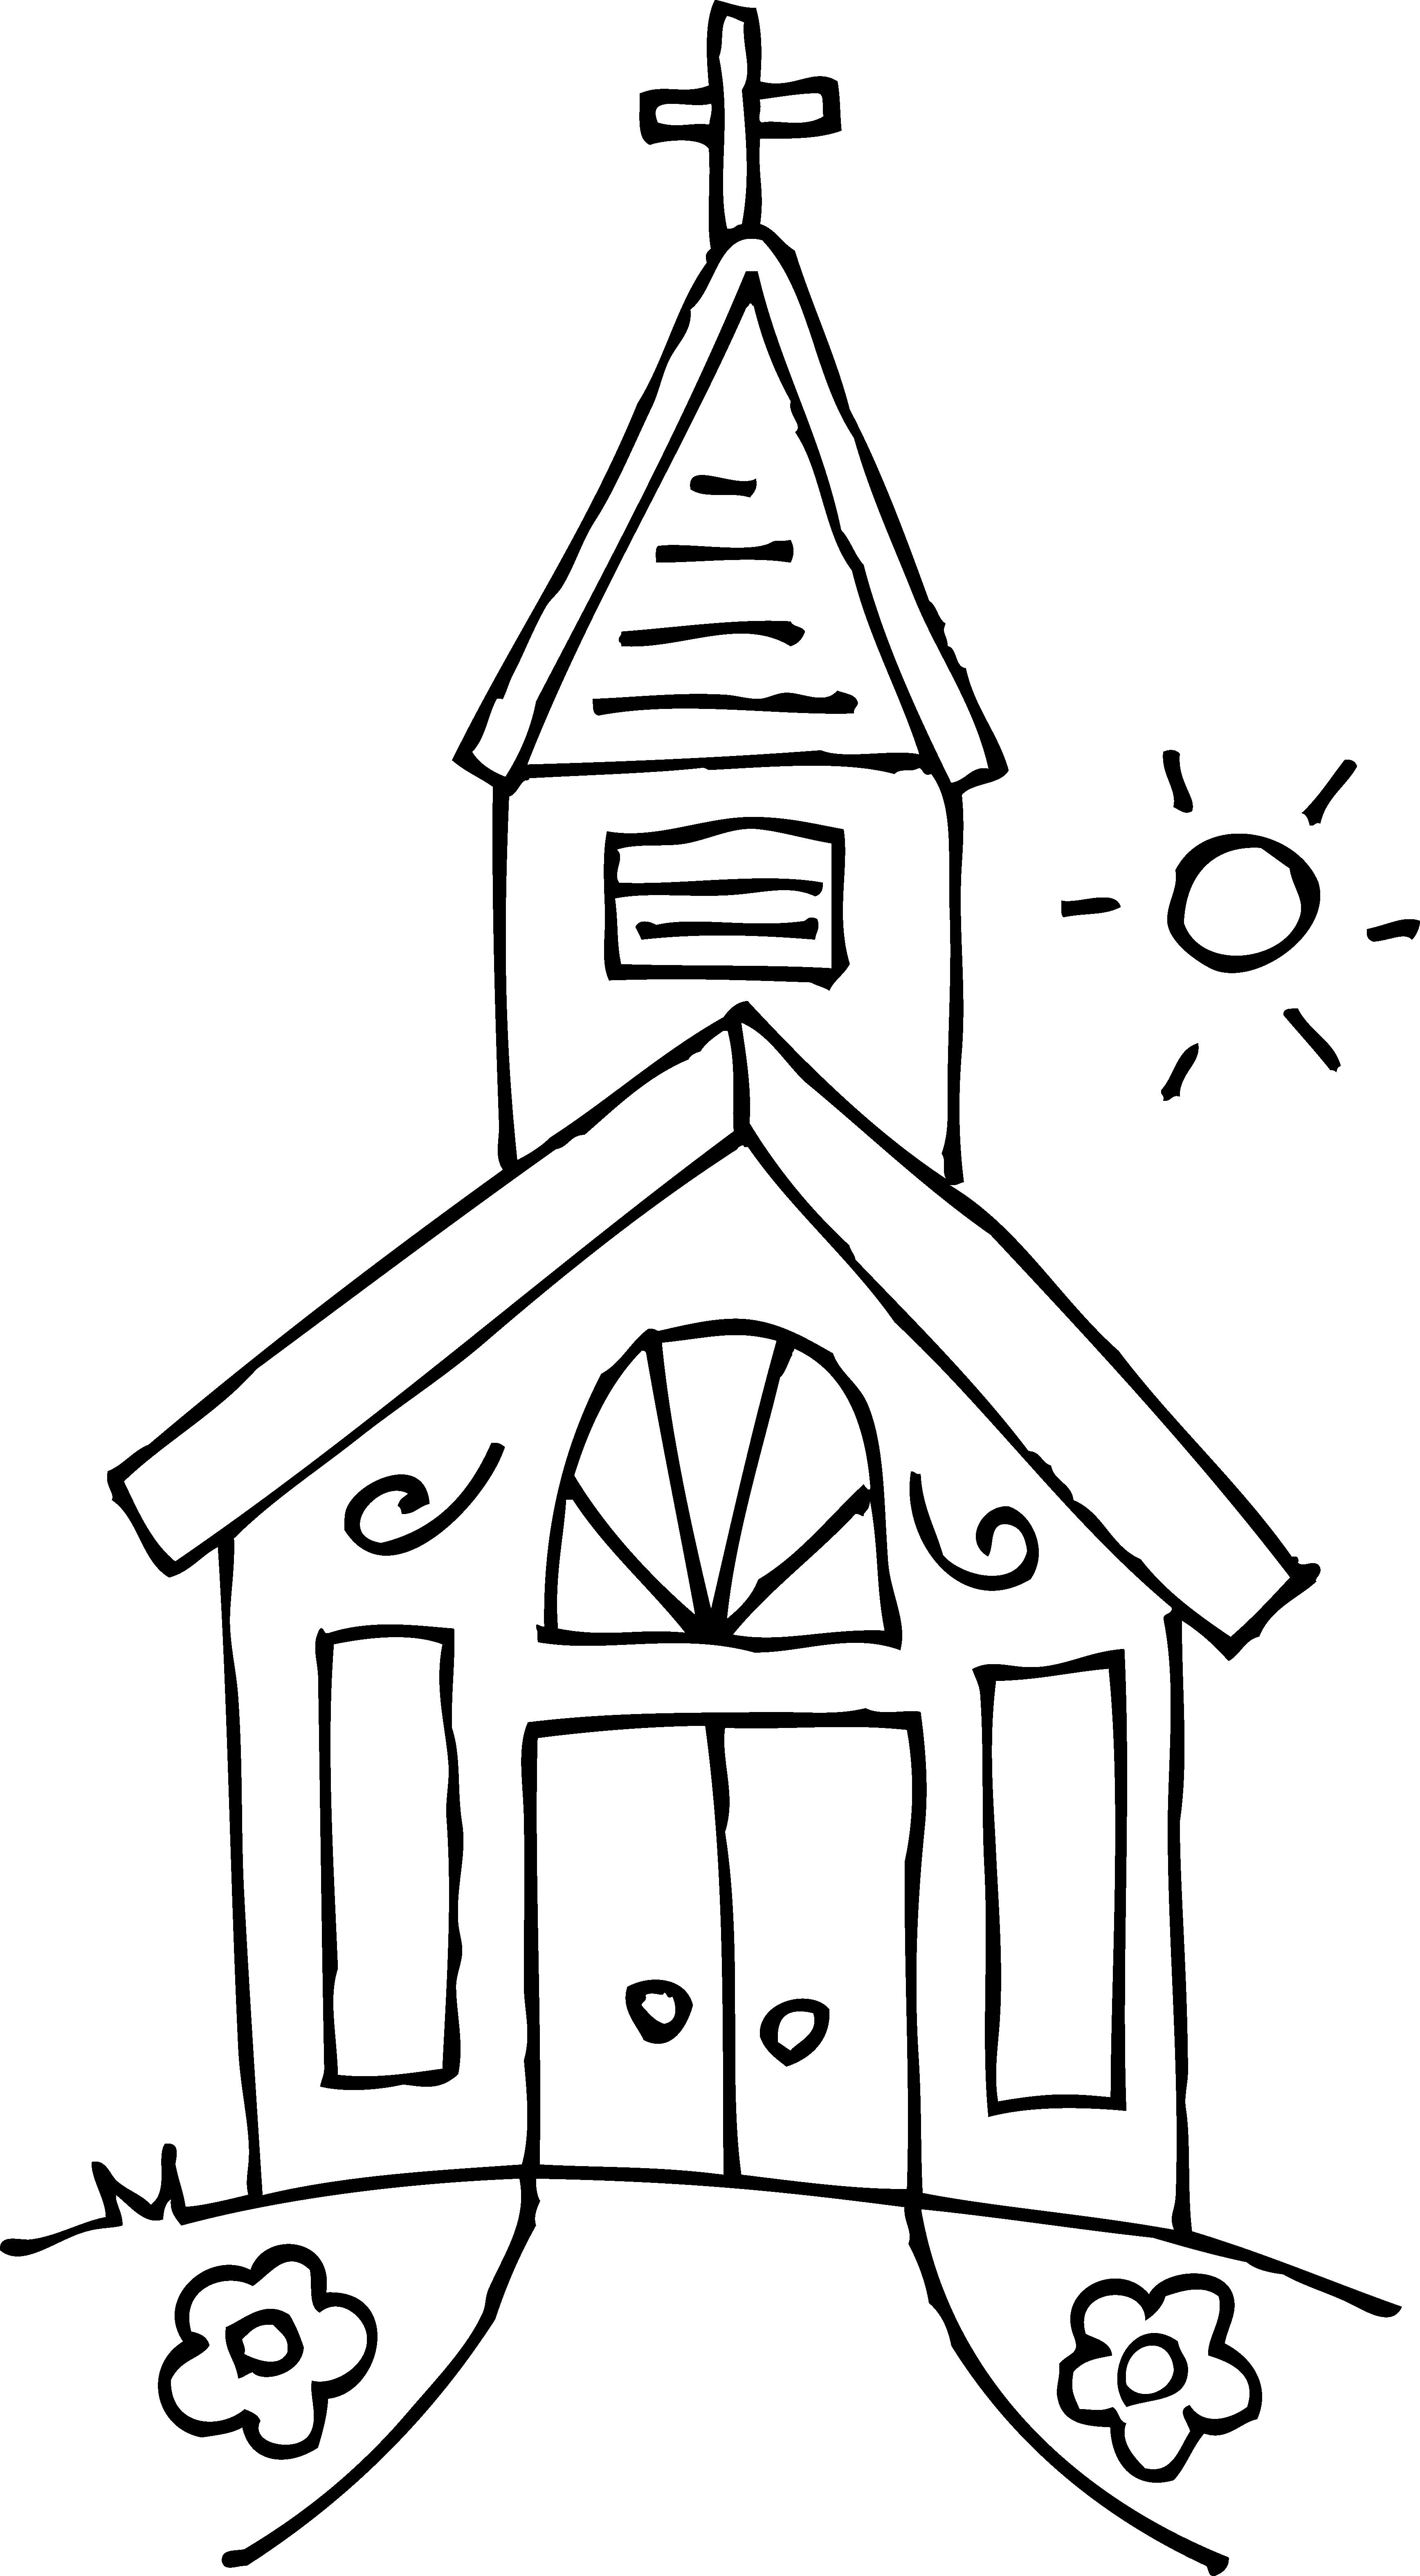 Simple Church Drawing at GetDrawings.com | Free for personal use ...